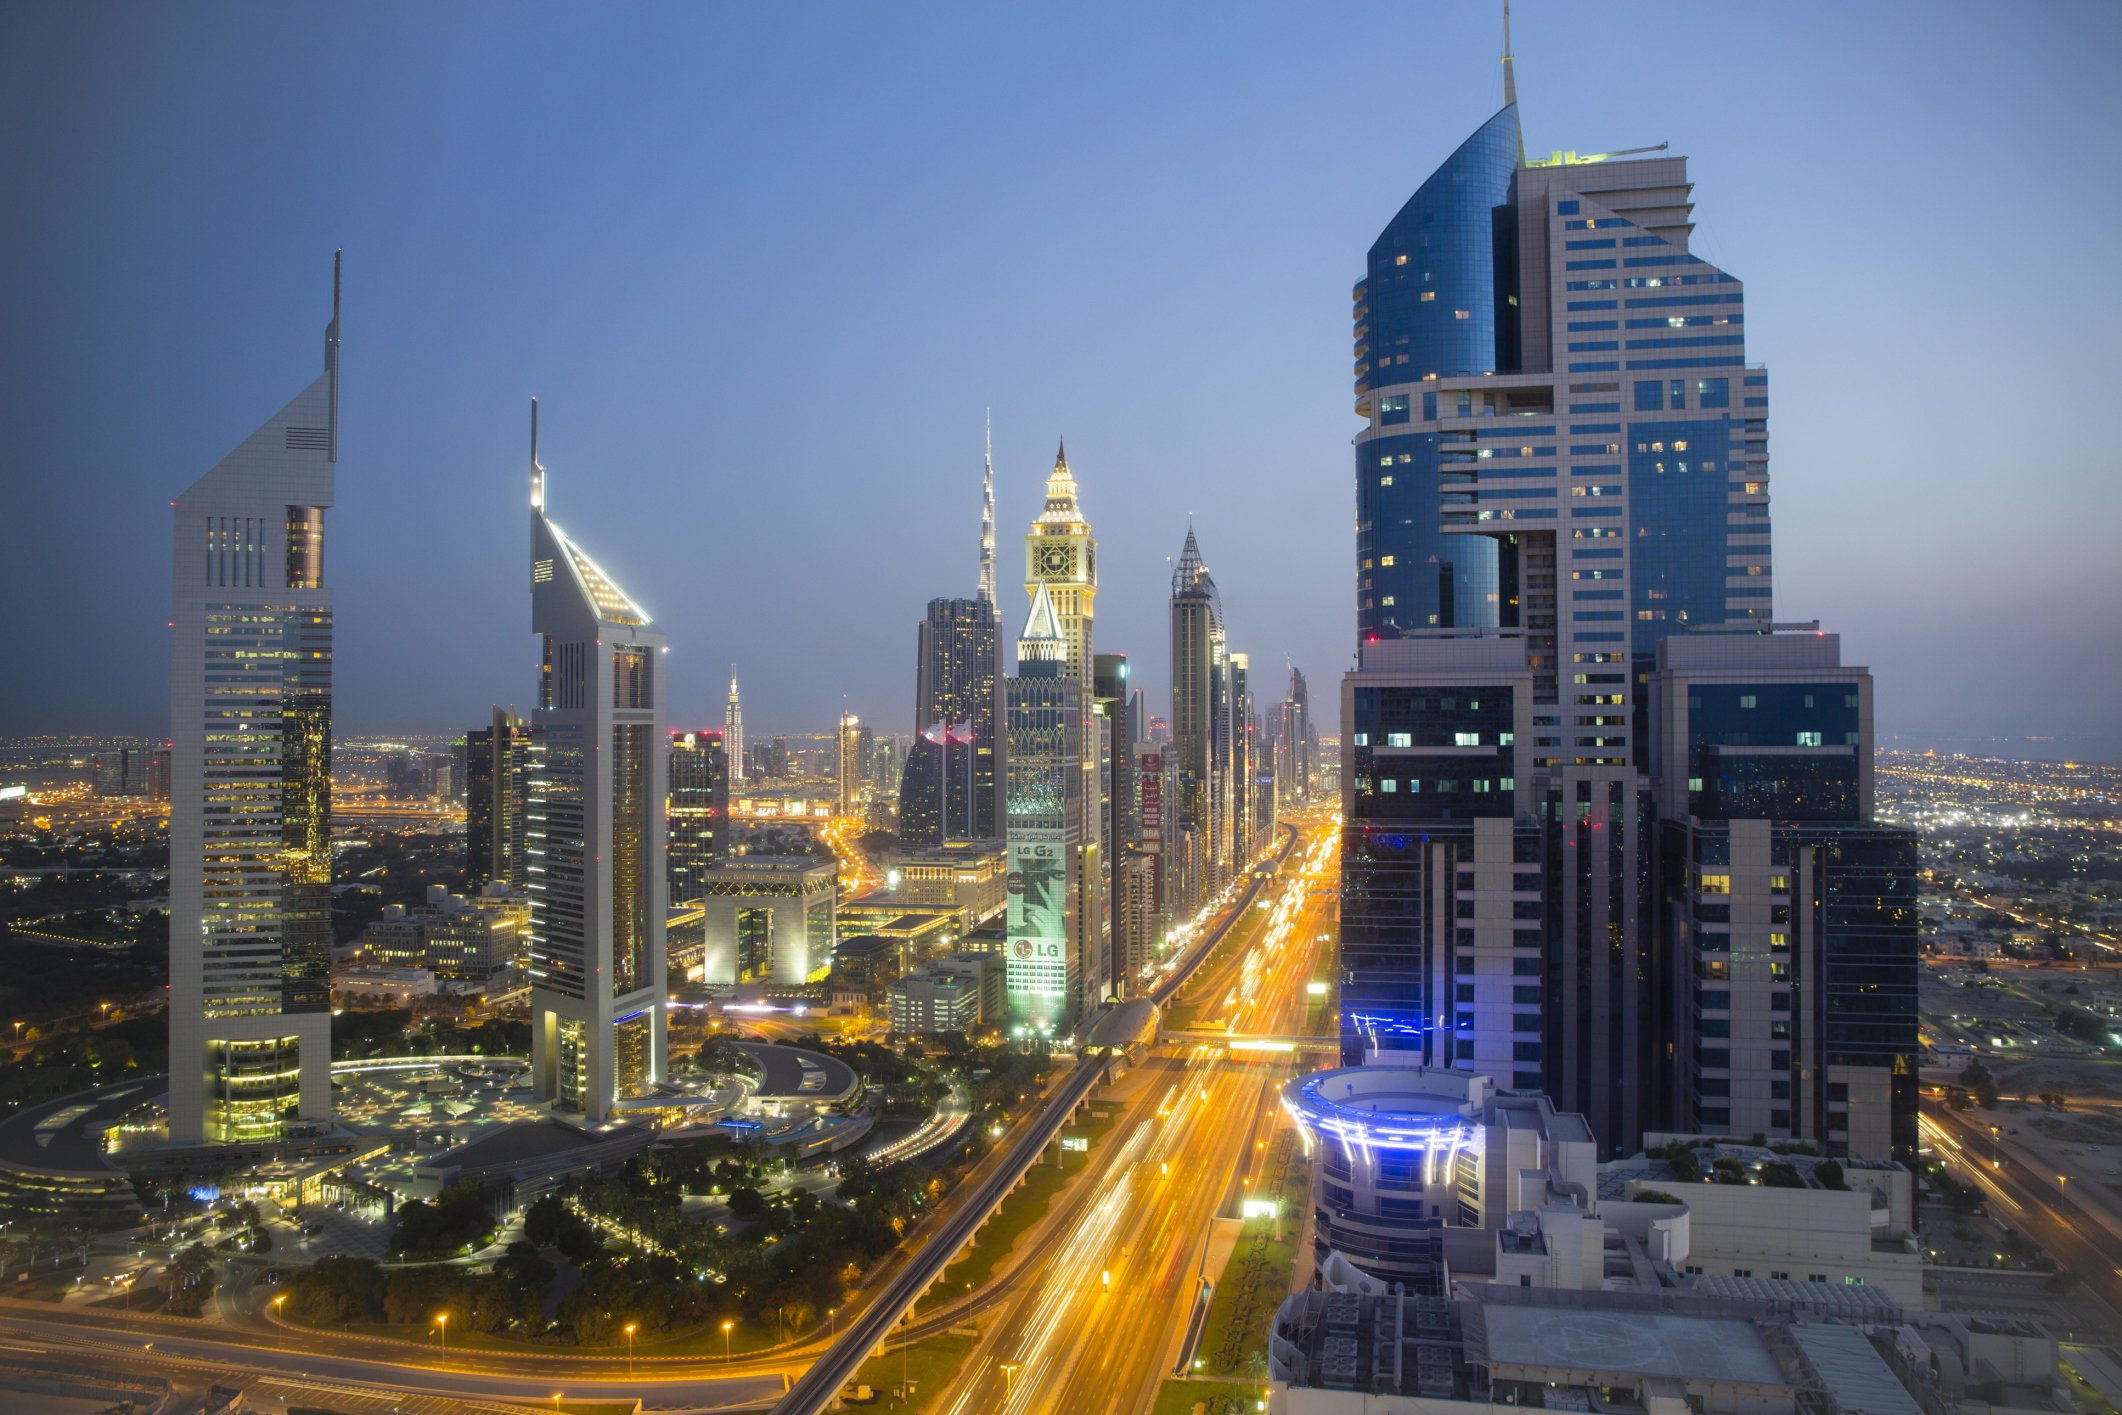 Dubai Residential, Hotel Real Estate Markets Peaking -JLL